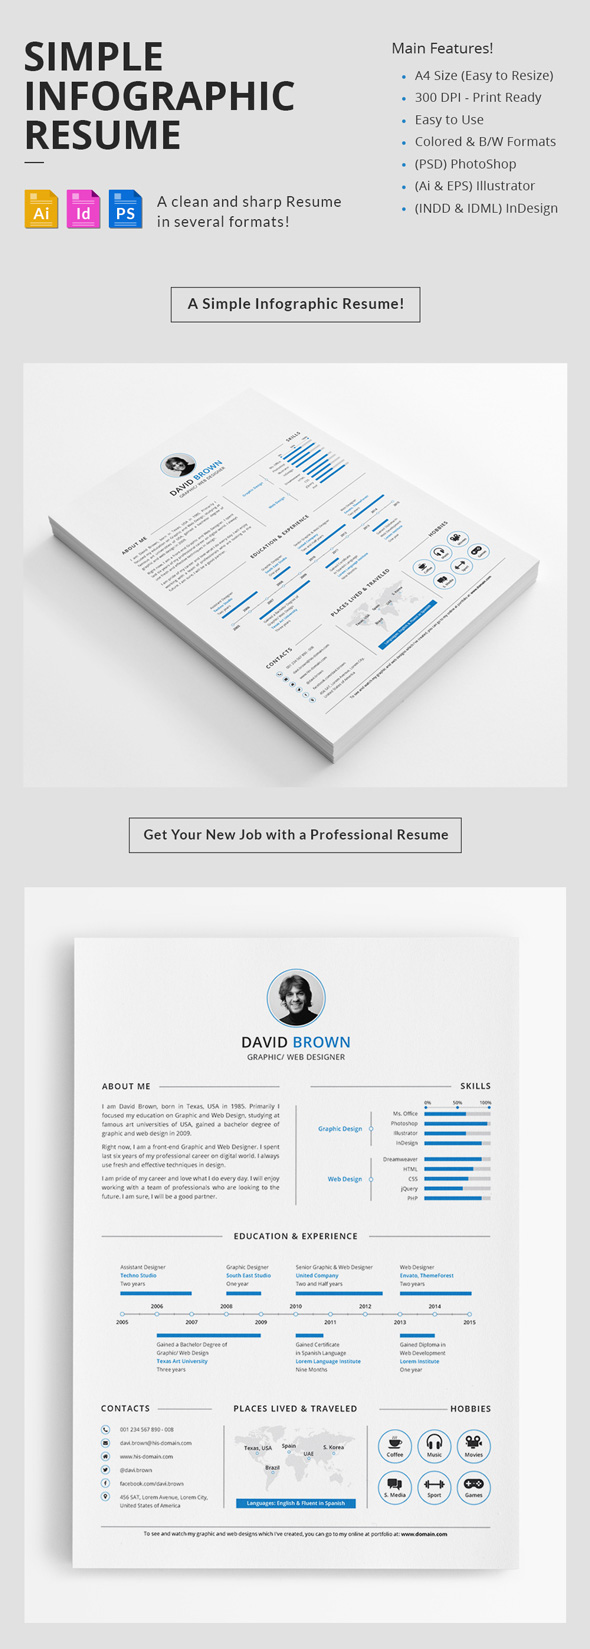 minimal resume template design - Interesting Resume Templates